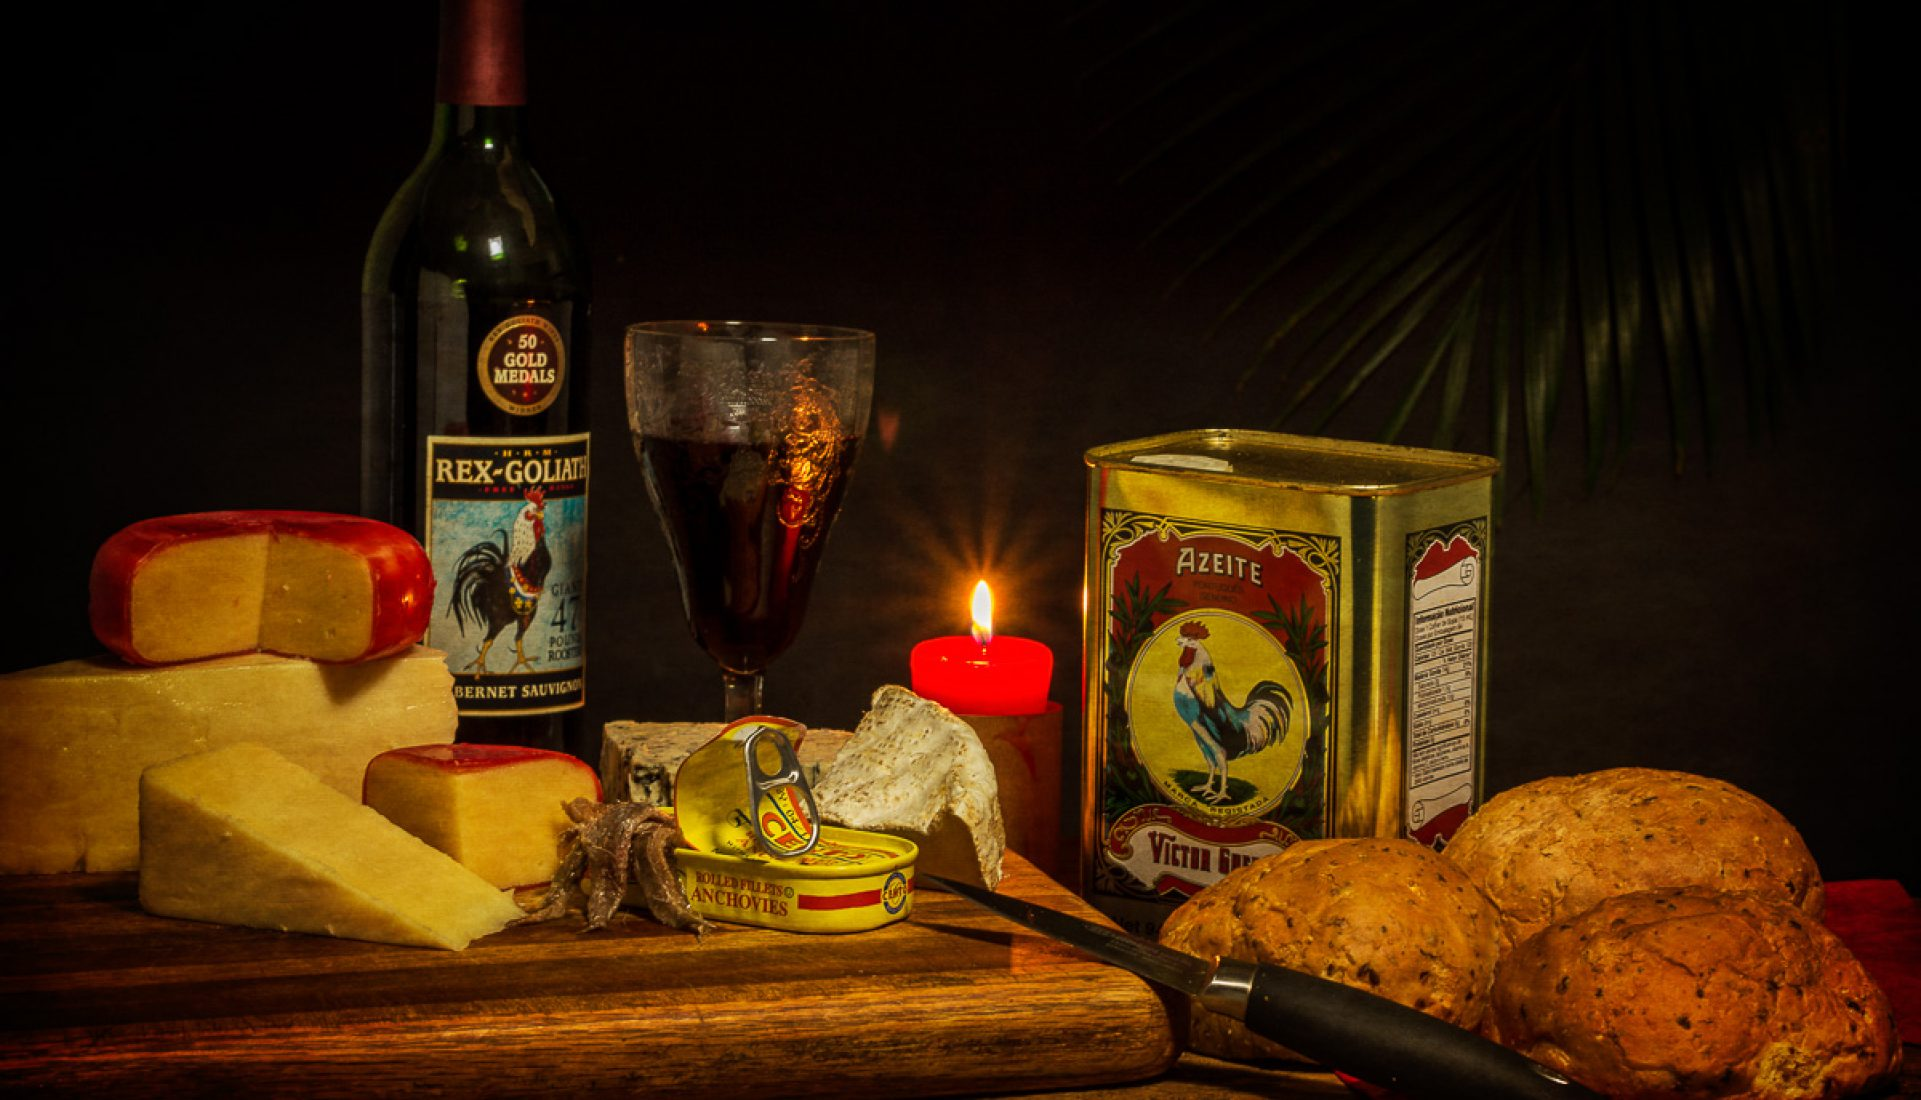 Still Life with Cheese, Anchovies and Roosters